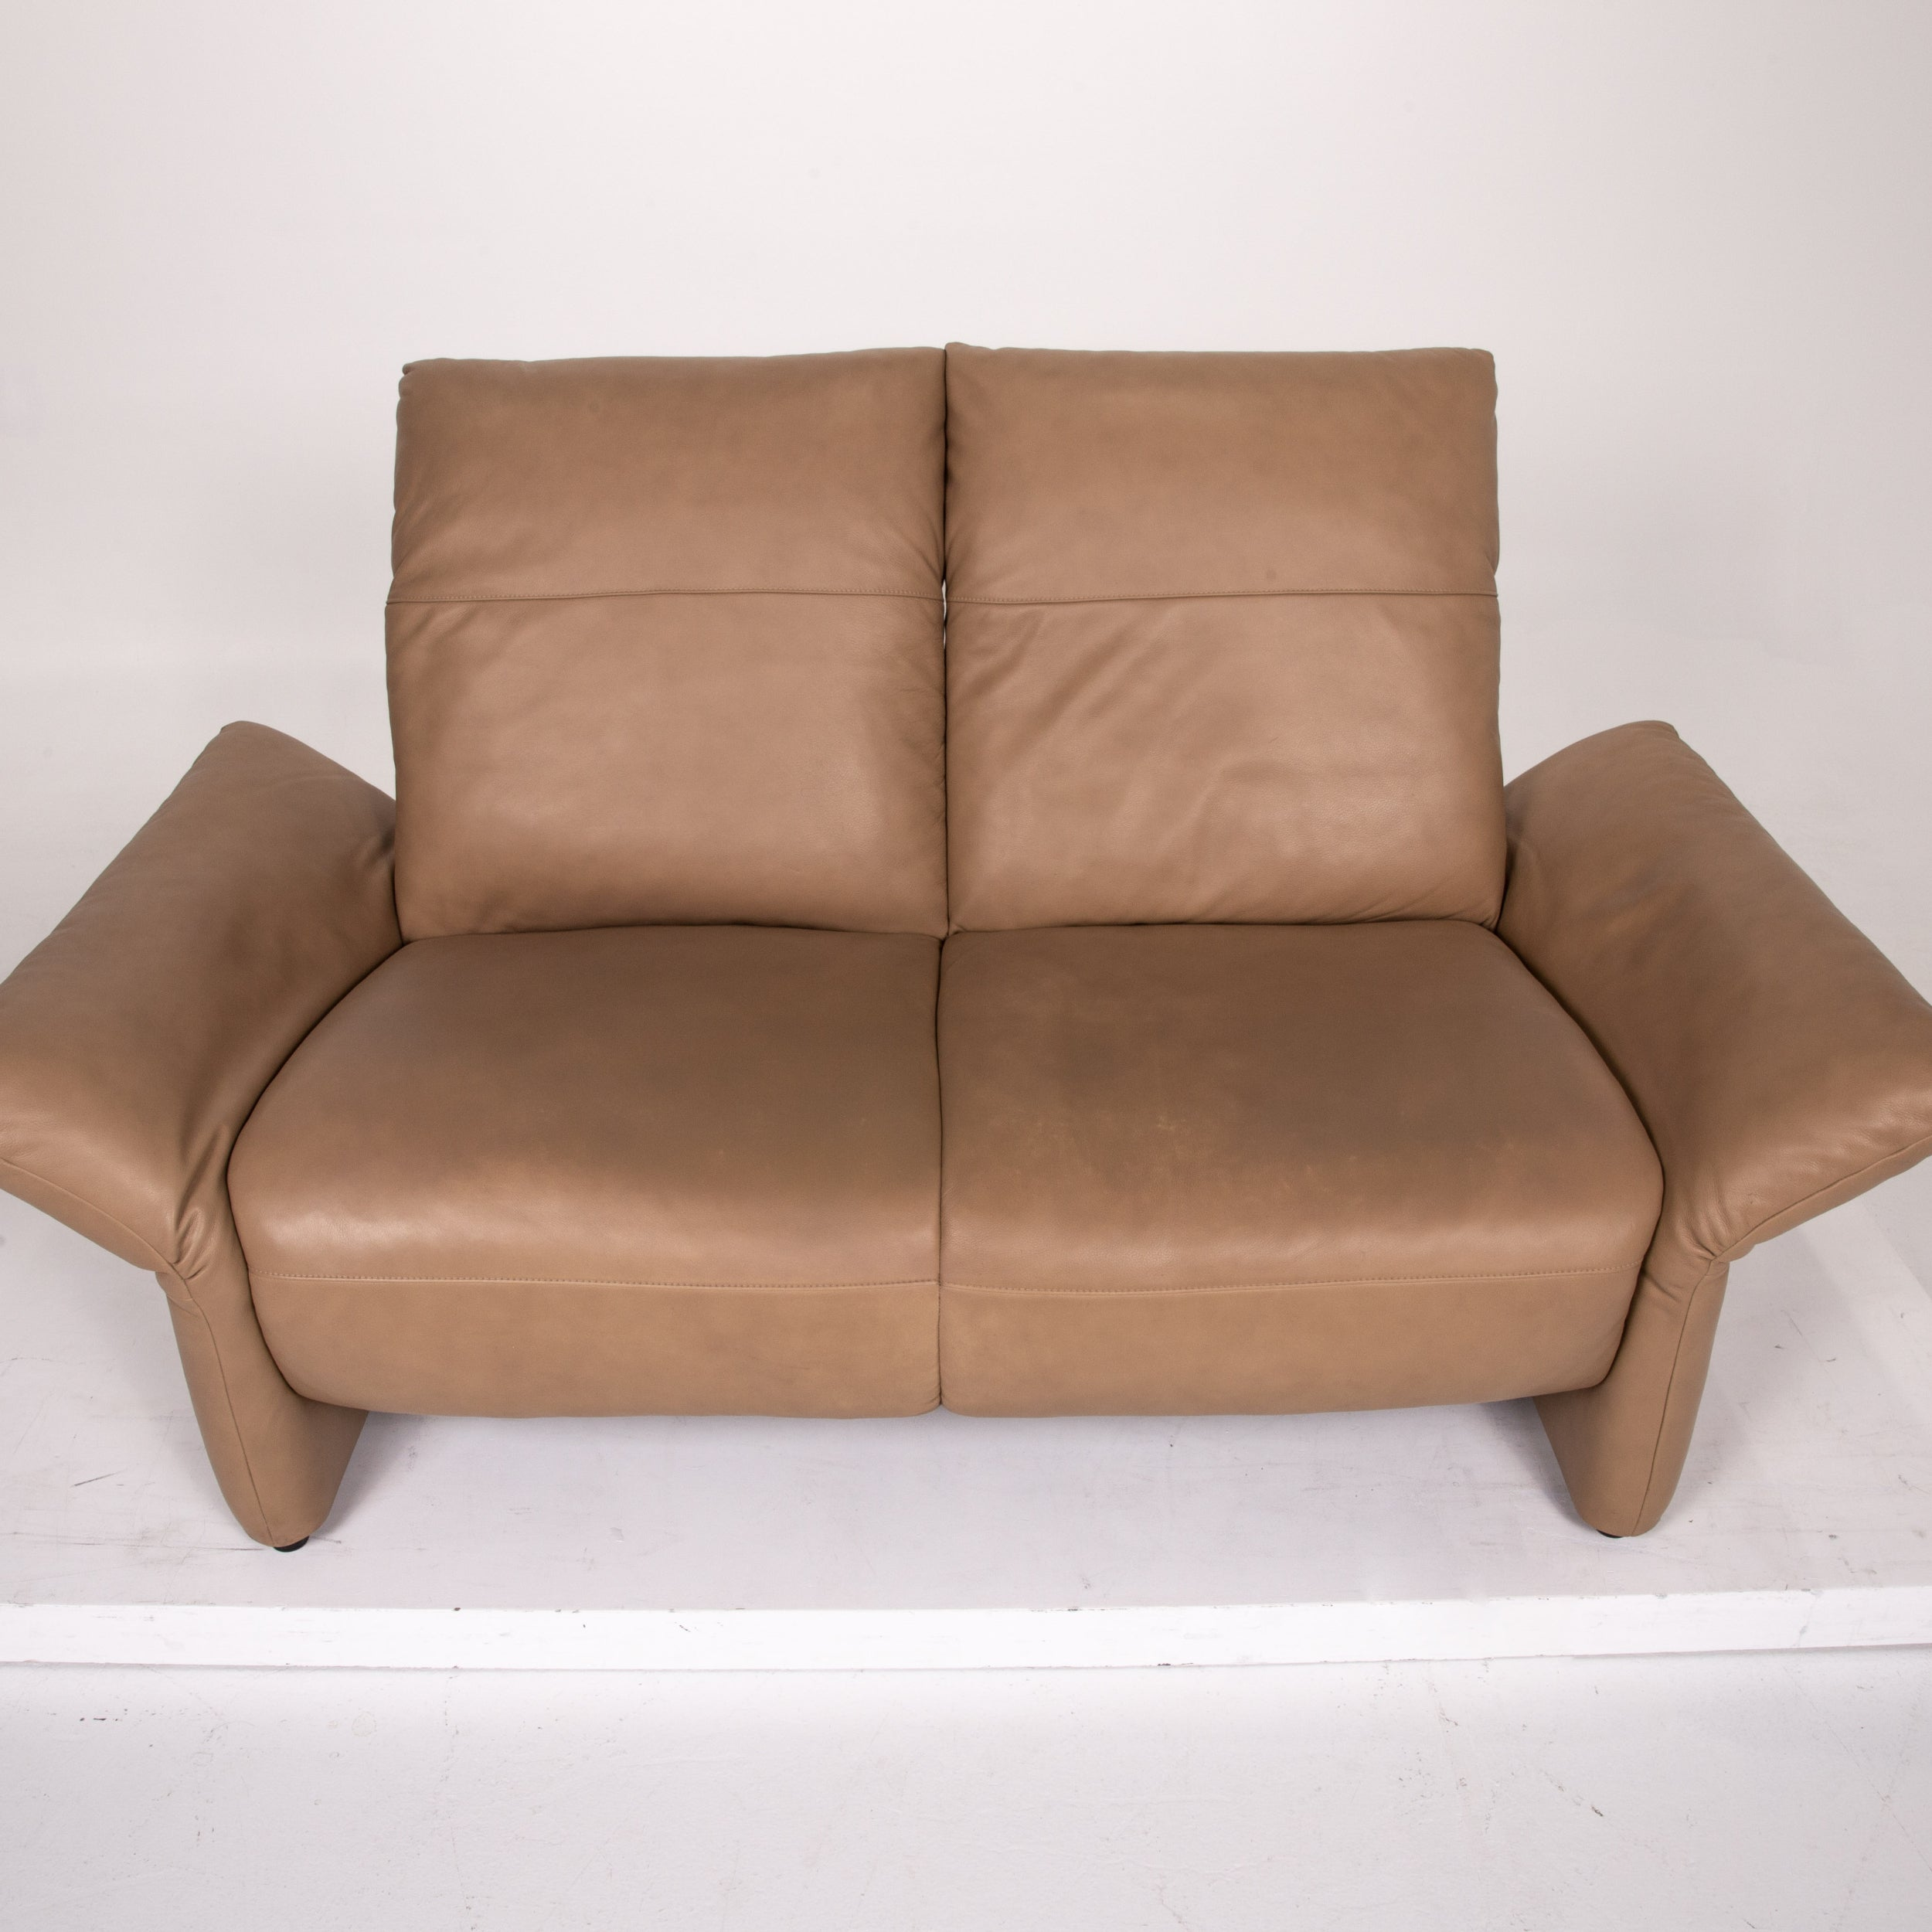 Koinor Elena Leather Sofa Brown Two Seat Function Couch For Sale At 1stdibs